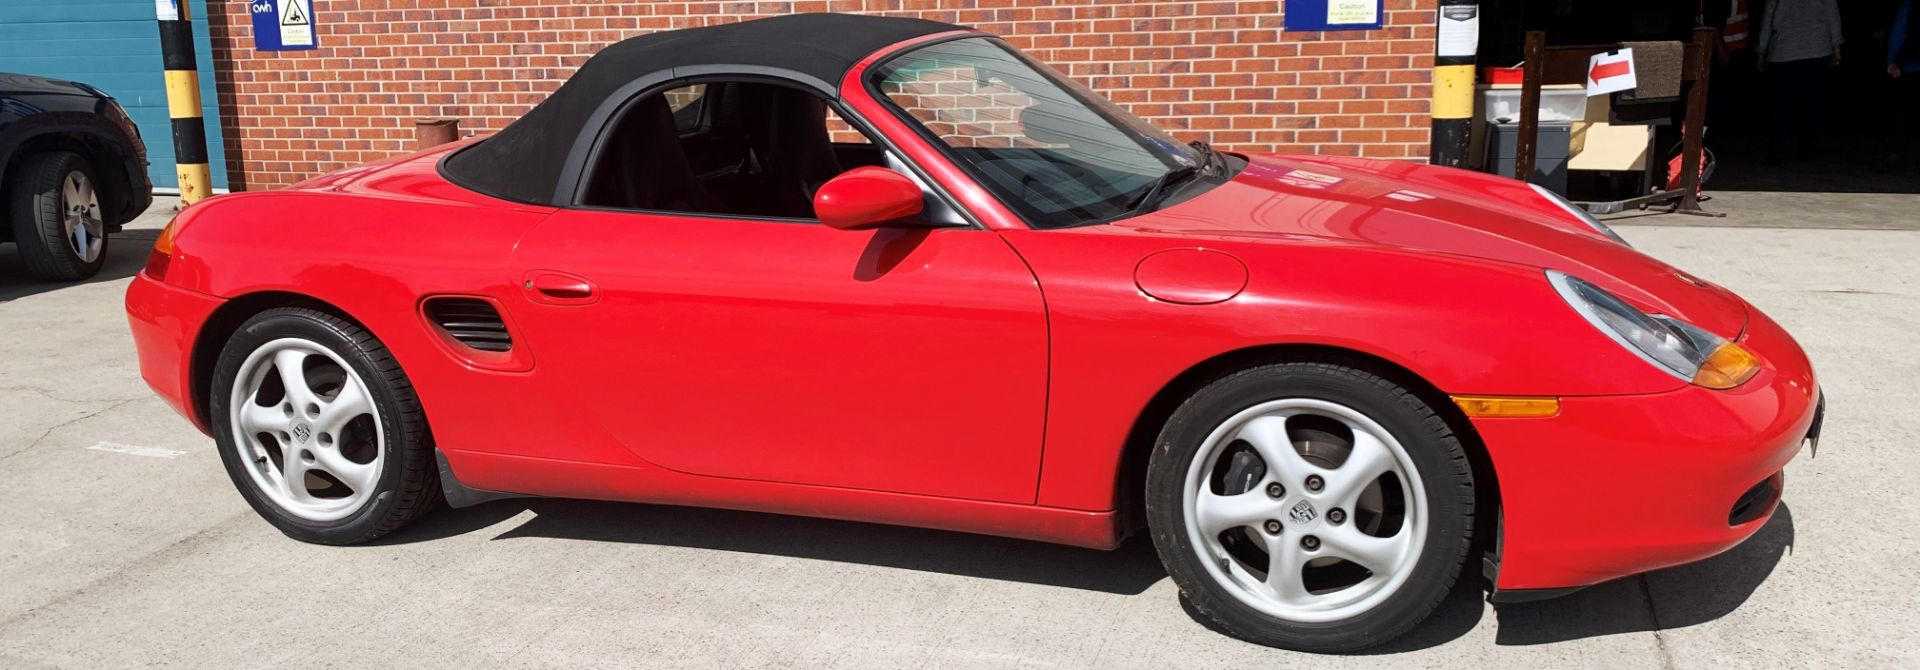 From a deceased estate: PORSCHE BOXSTER 2.5 CONVERTIBLE - Image 5 of 25